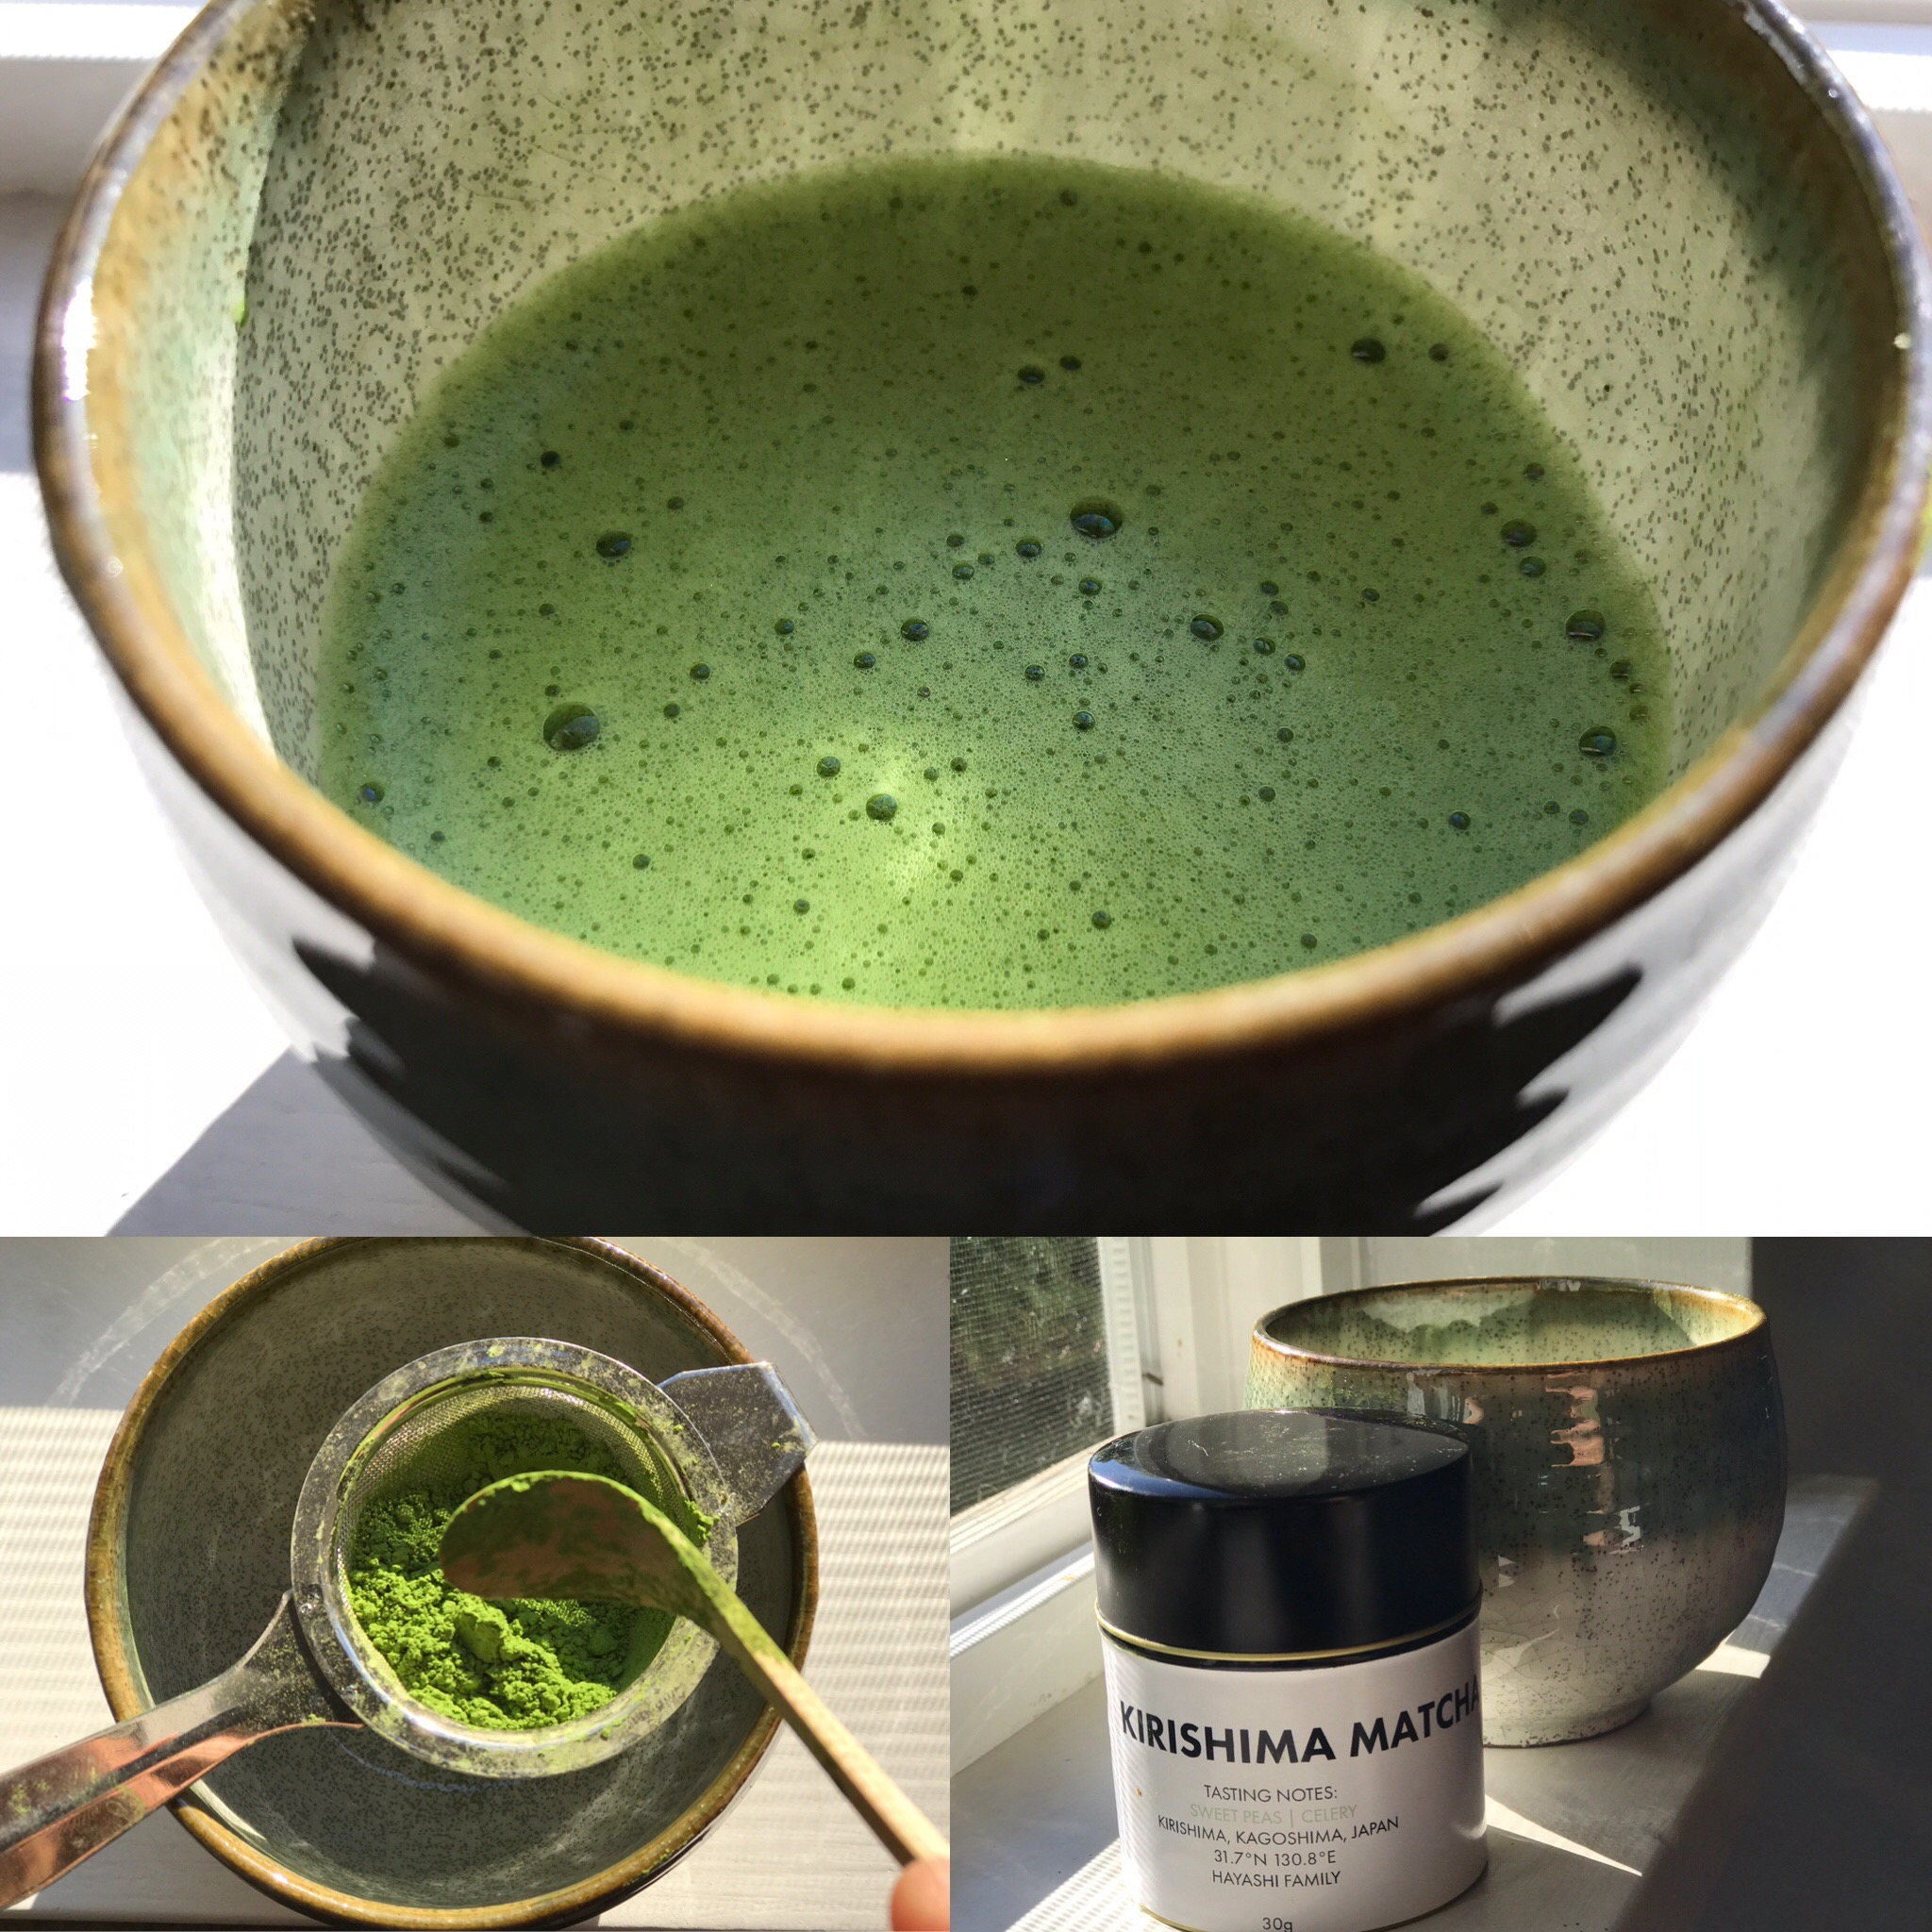 Making the Kirishima Matcha at Home